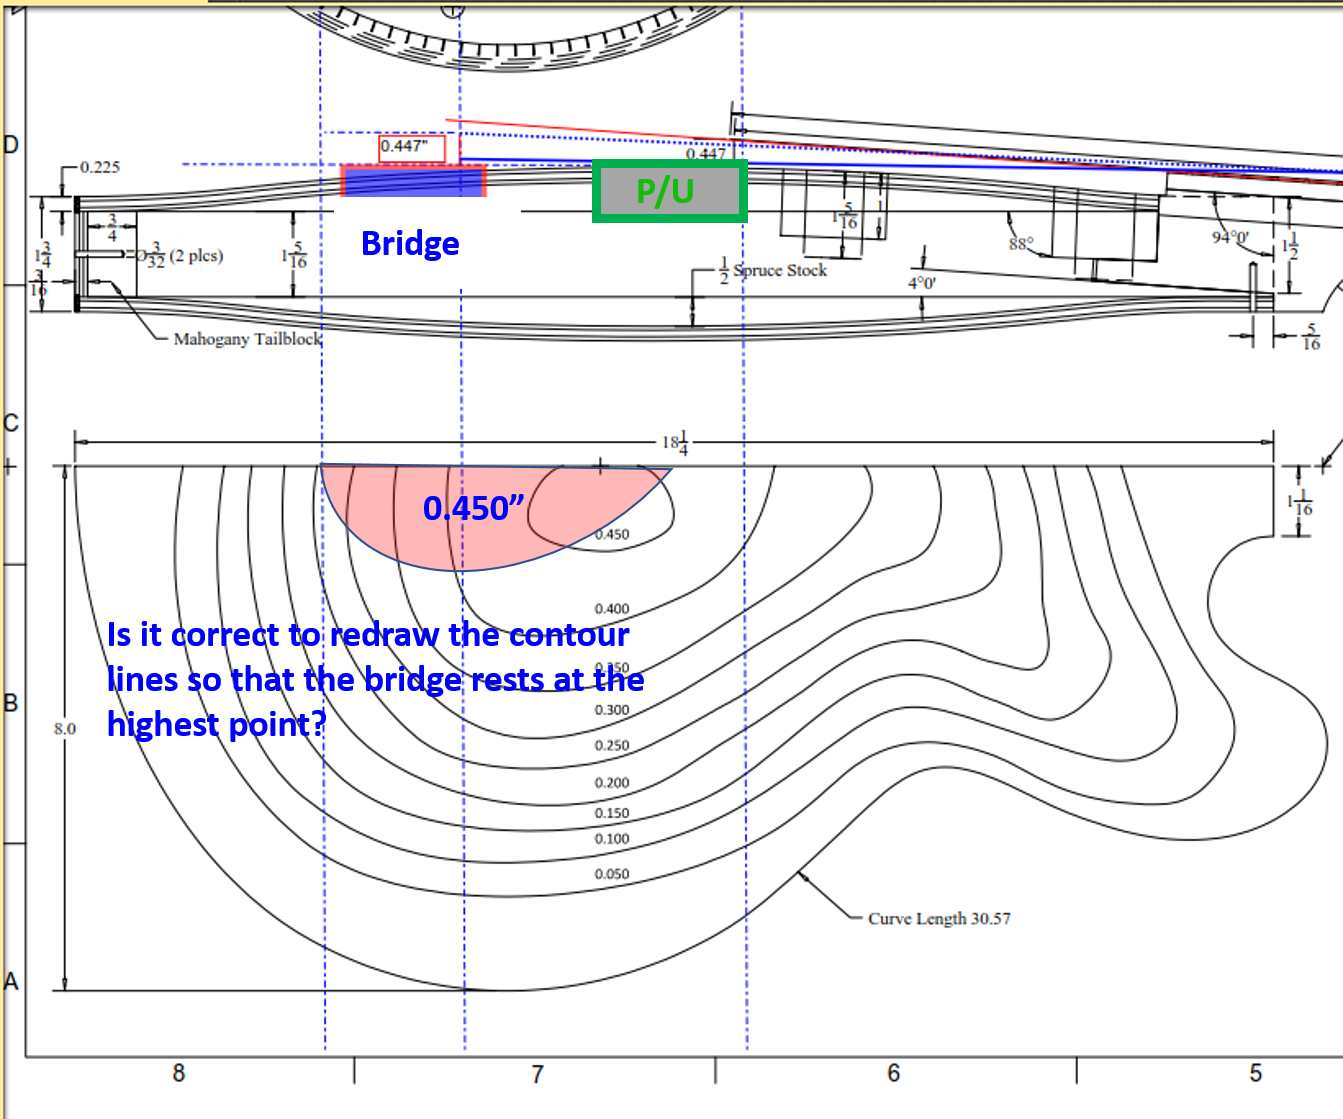 plan and contour 2.png